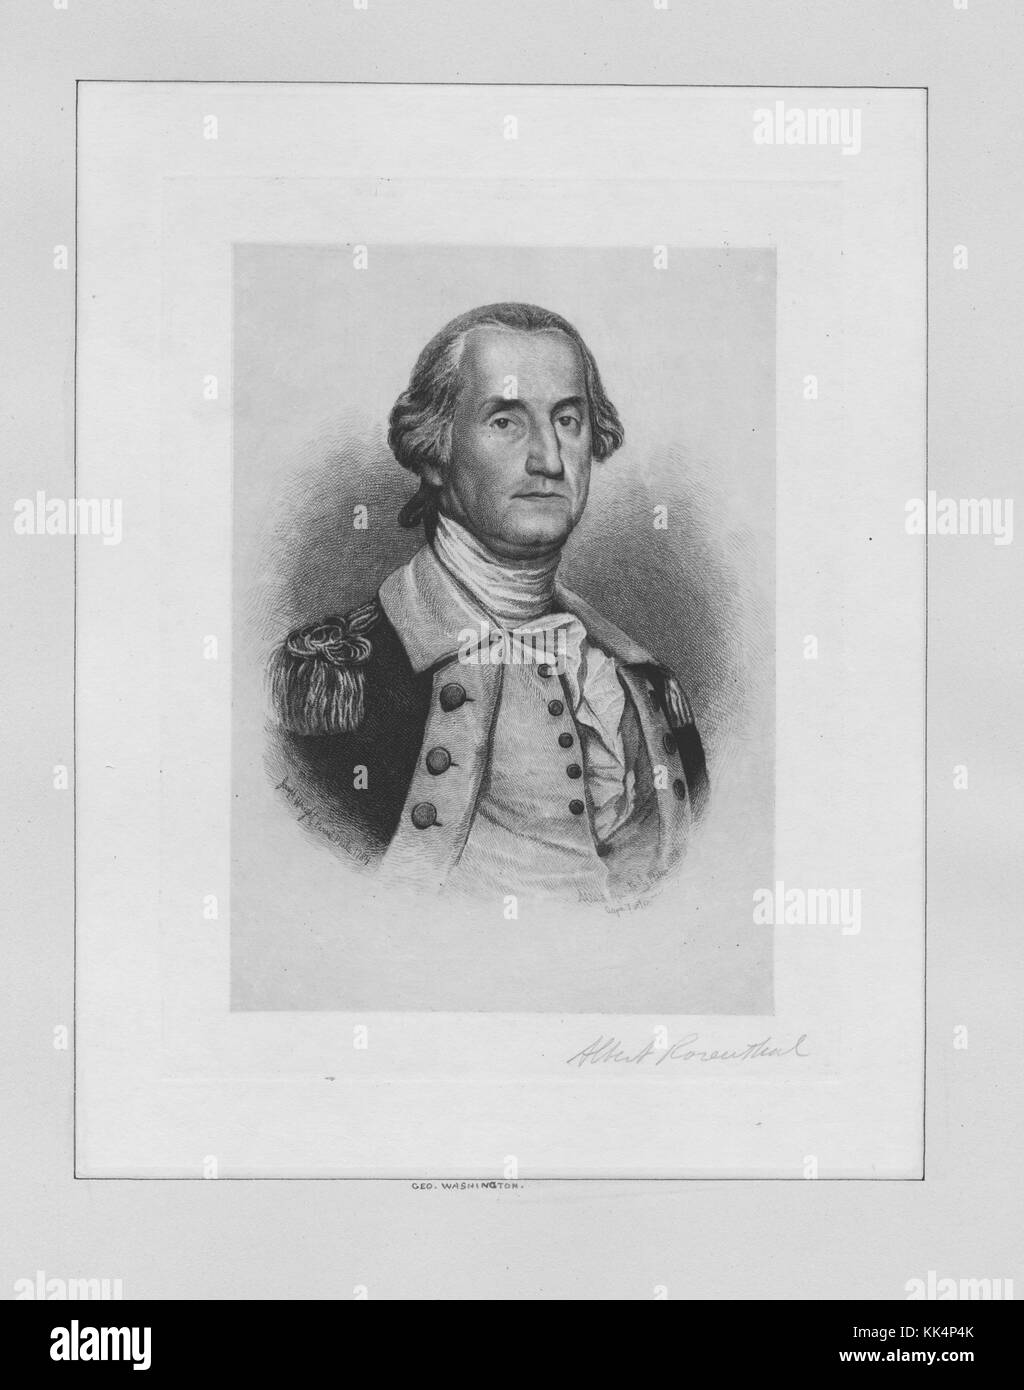 An engraving from a portrait of George Washington, he was the first President of the United States of America and - Stock Image